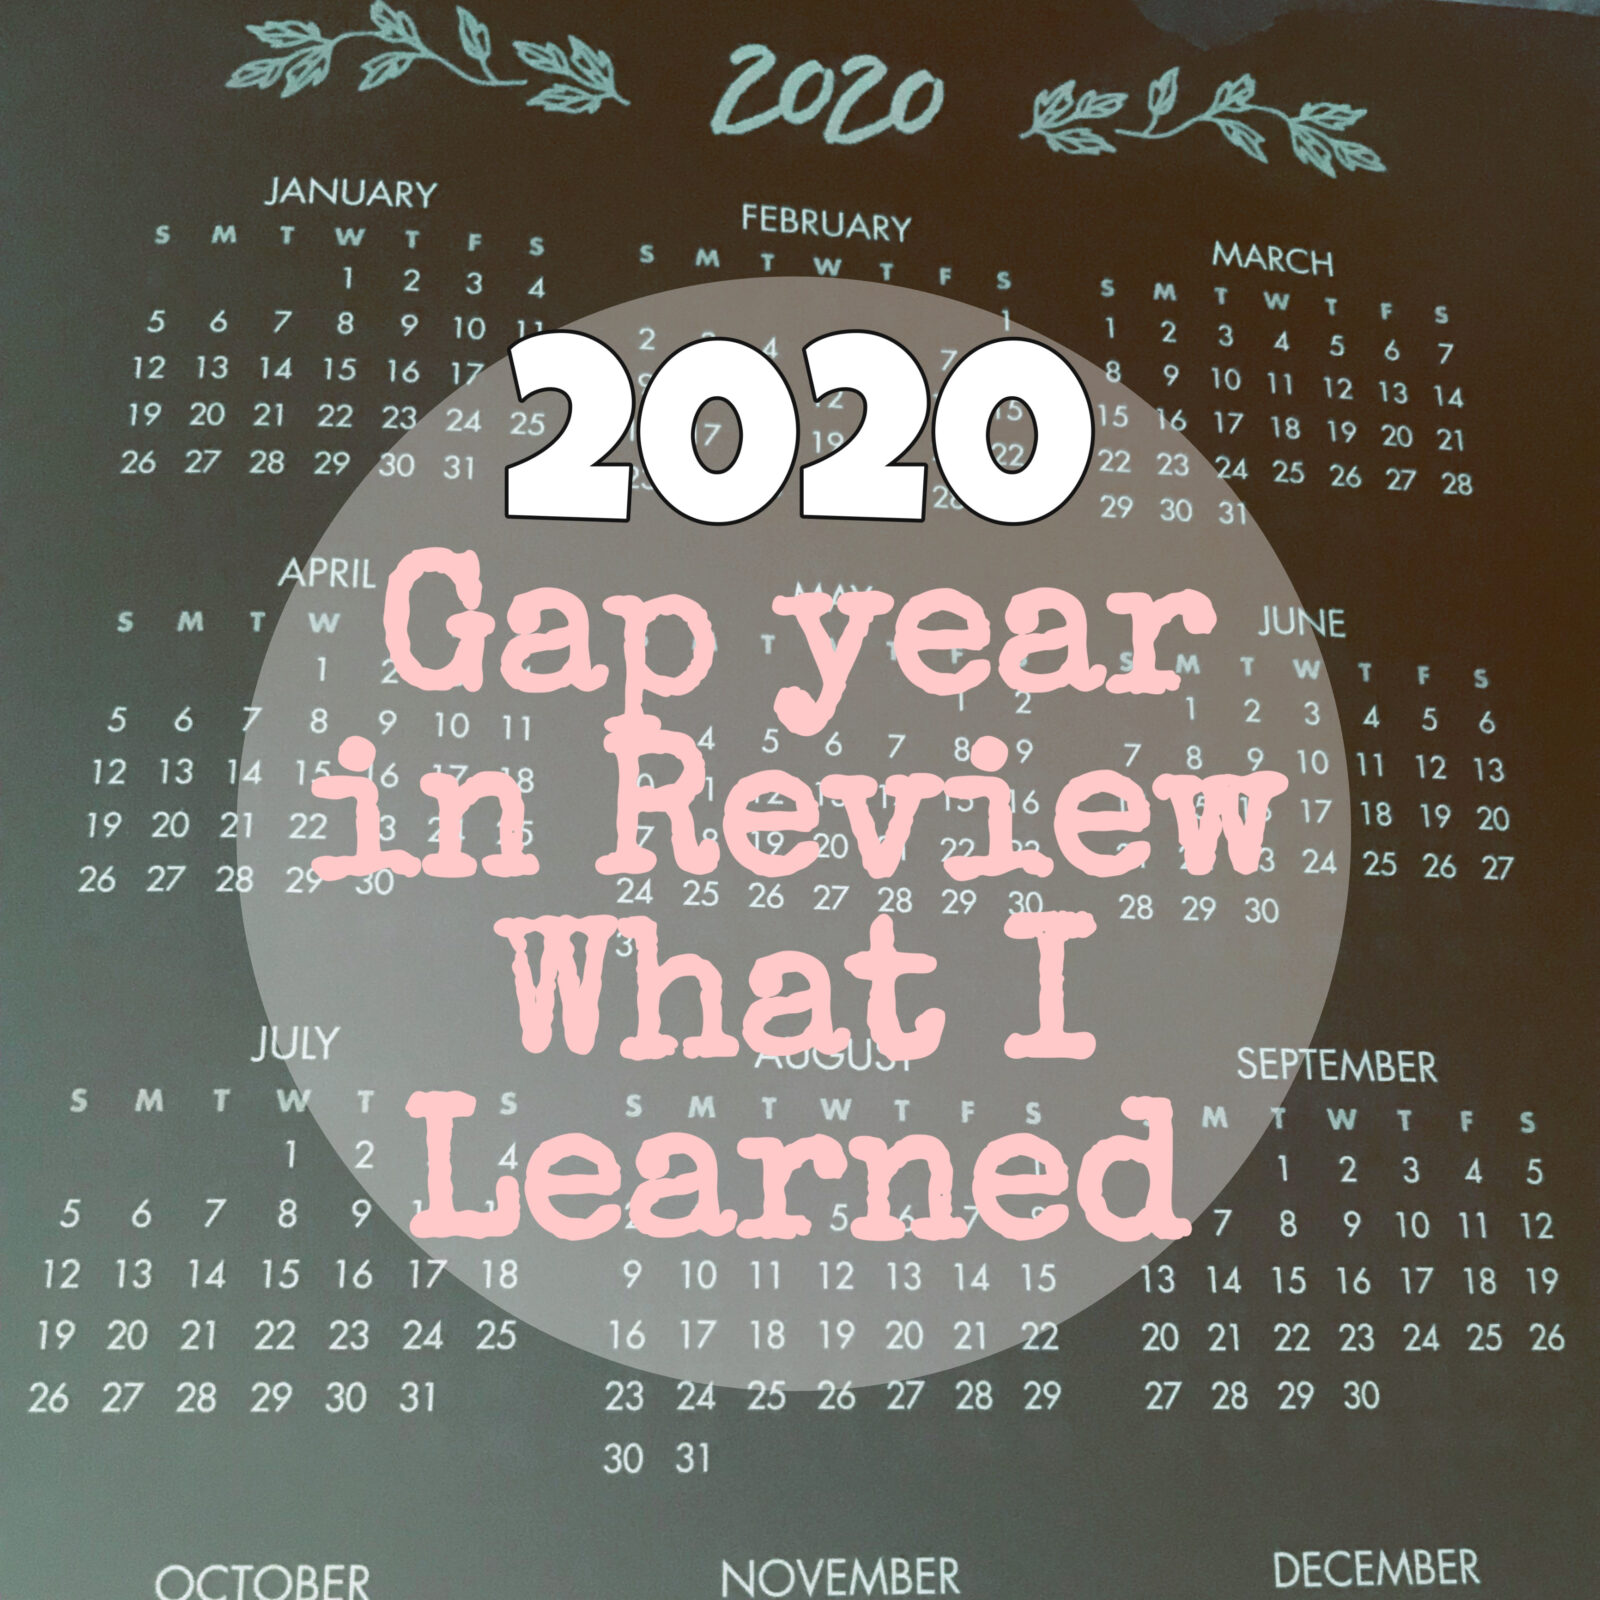 Our Gap Year in Review / What I Learned in 2020